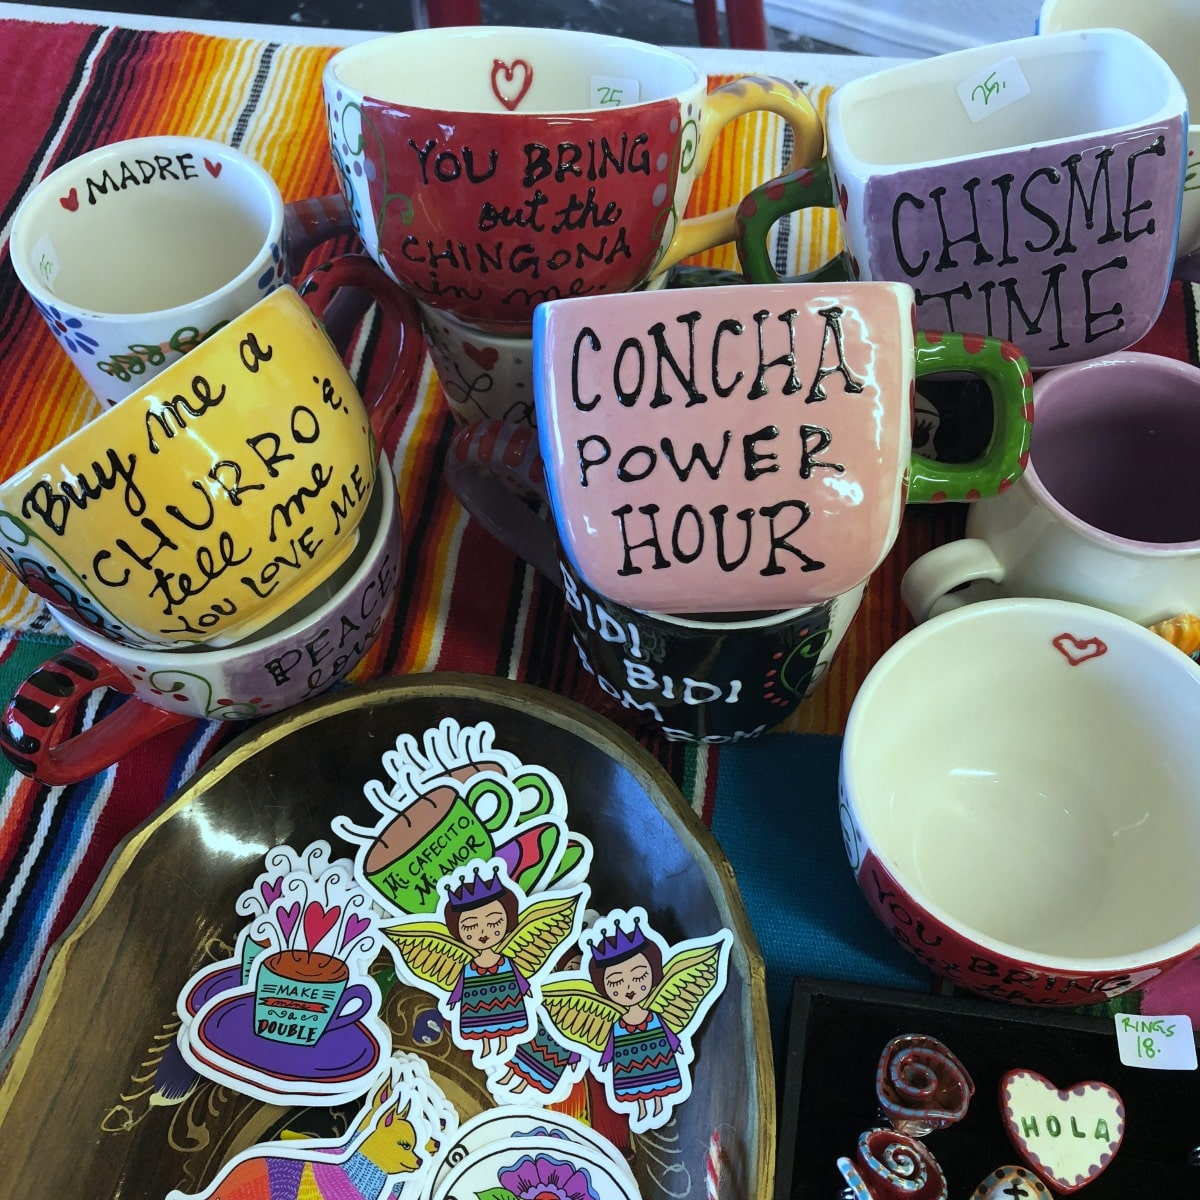 Mugs and stickers by Crafty Chica.